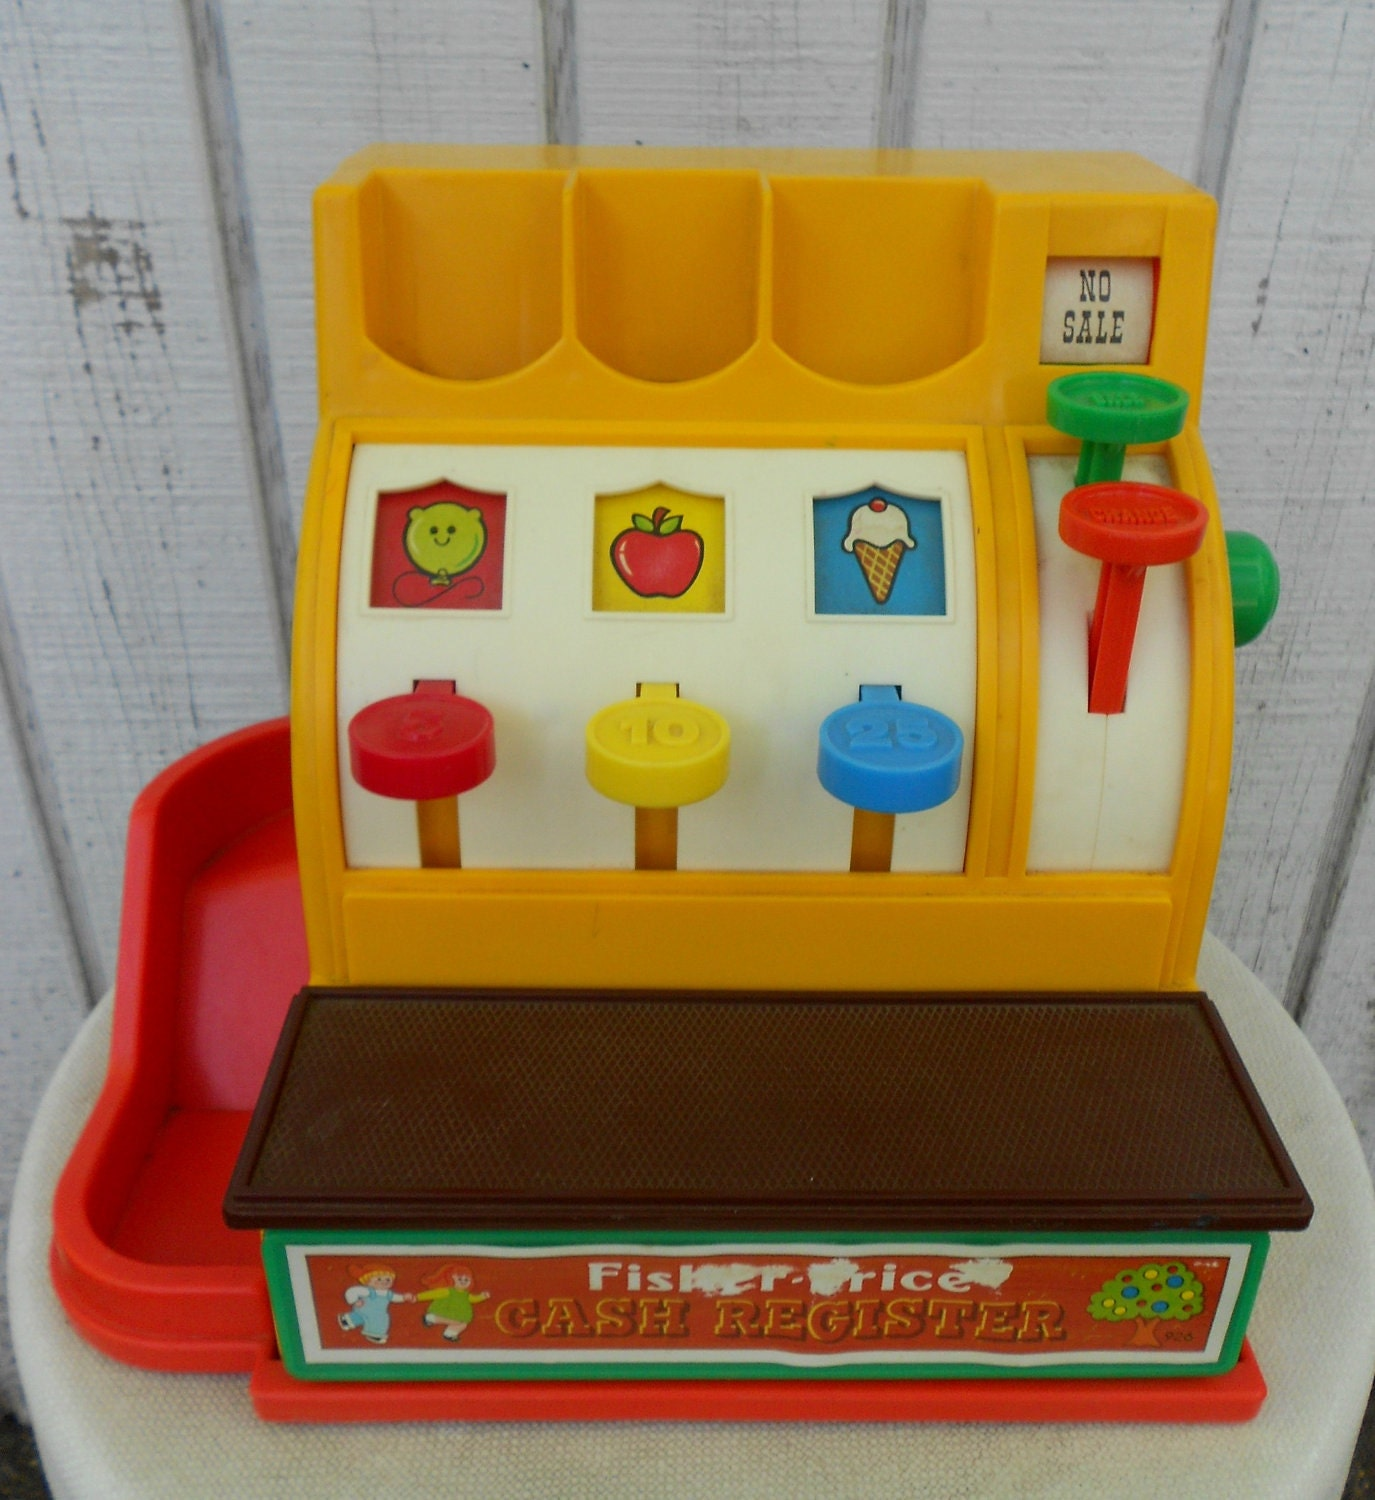 Classic Fisher Price Toys : Vintage fisher price cash register s toy child cashier